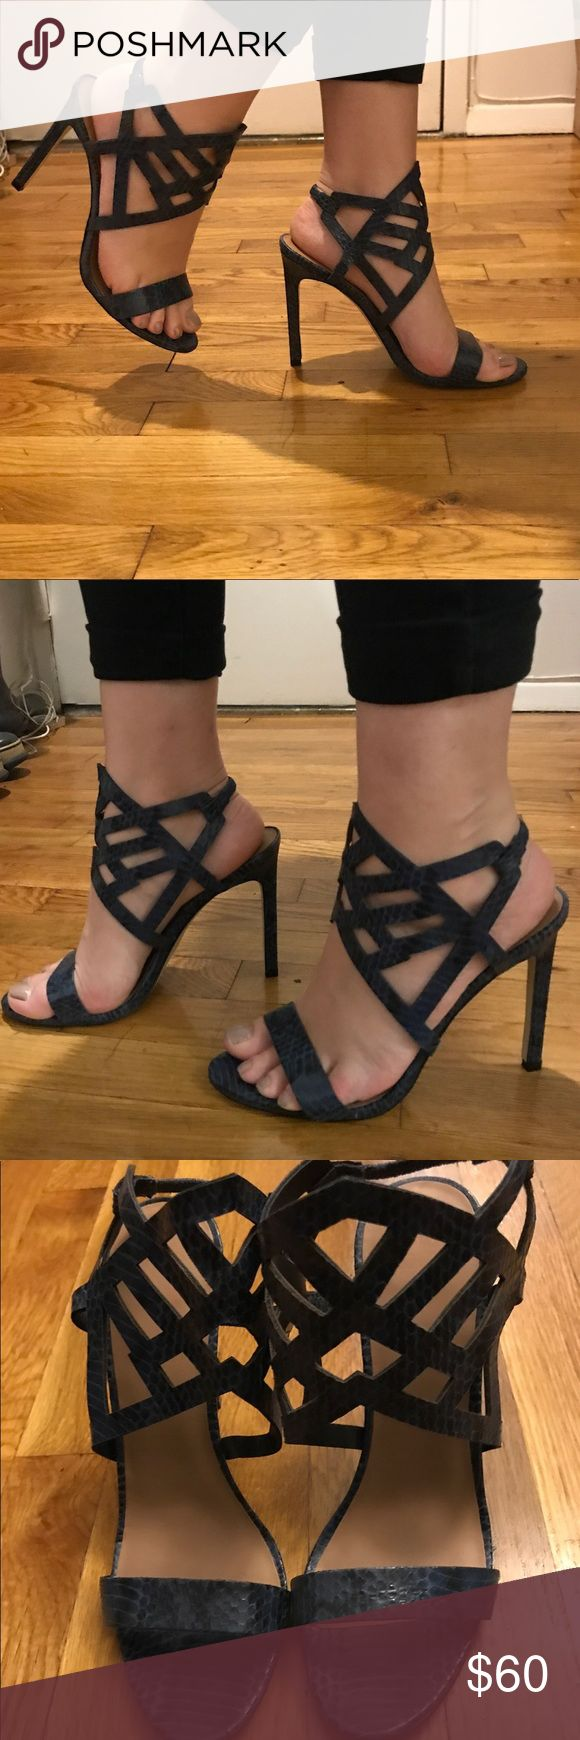 NEW AND UNWORN fifth city shoes New and unworn fifth city cage strappy shoes in blue snake print 🐍 price negotiable no trades! Saks Fifth Avenue Shoes Heels